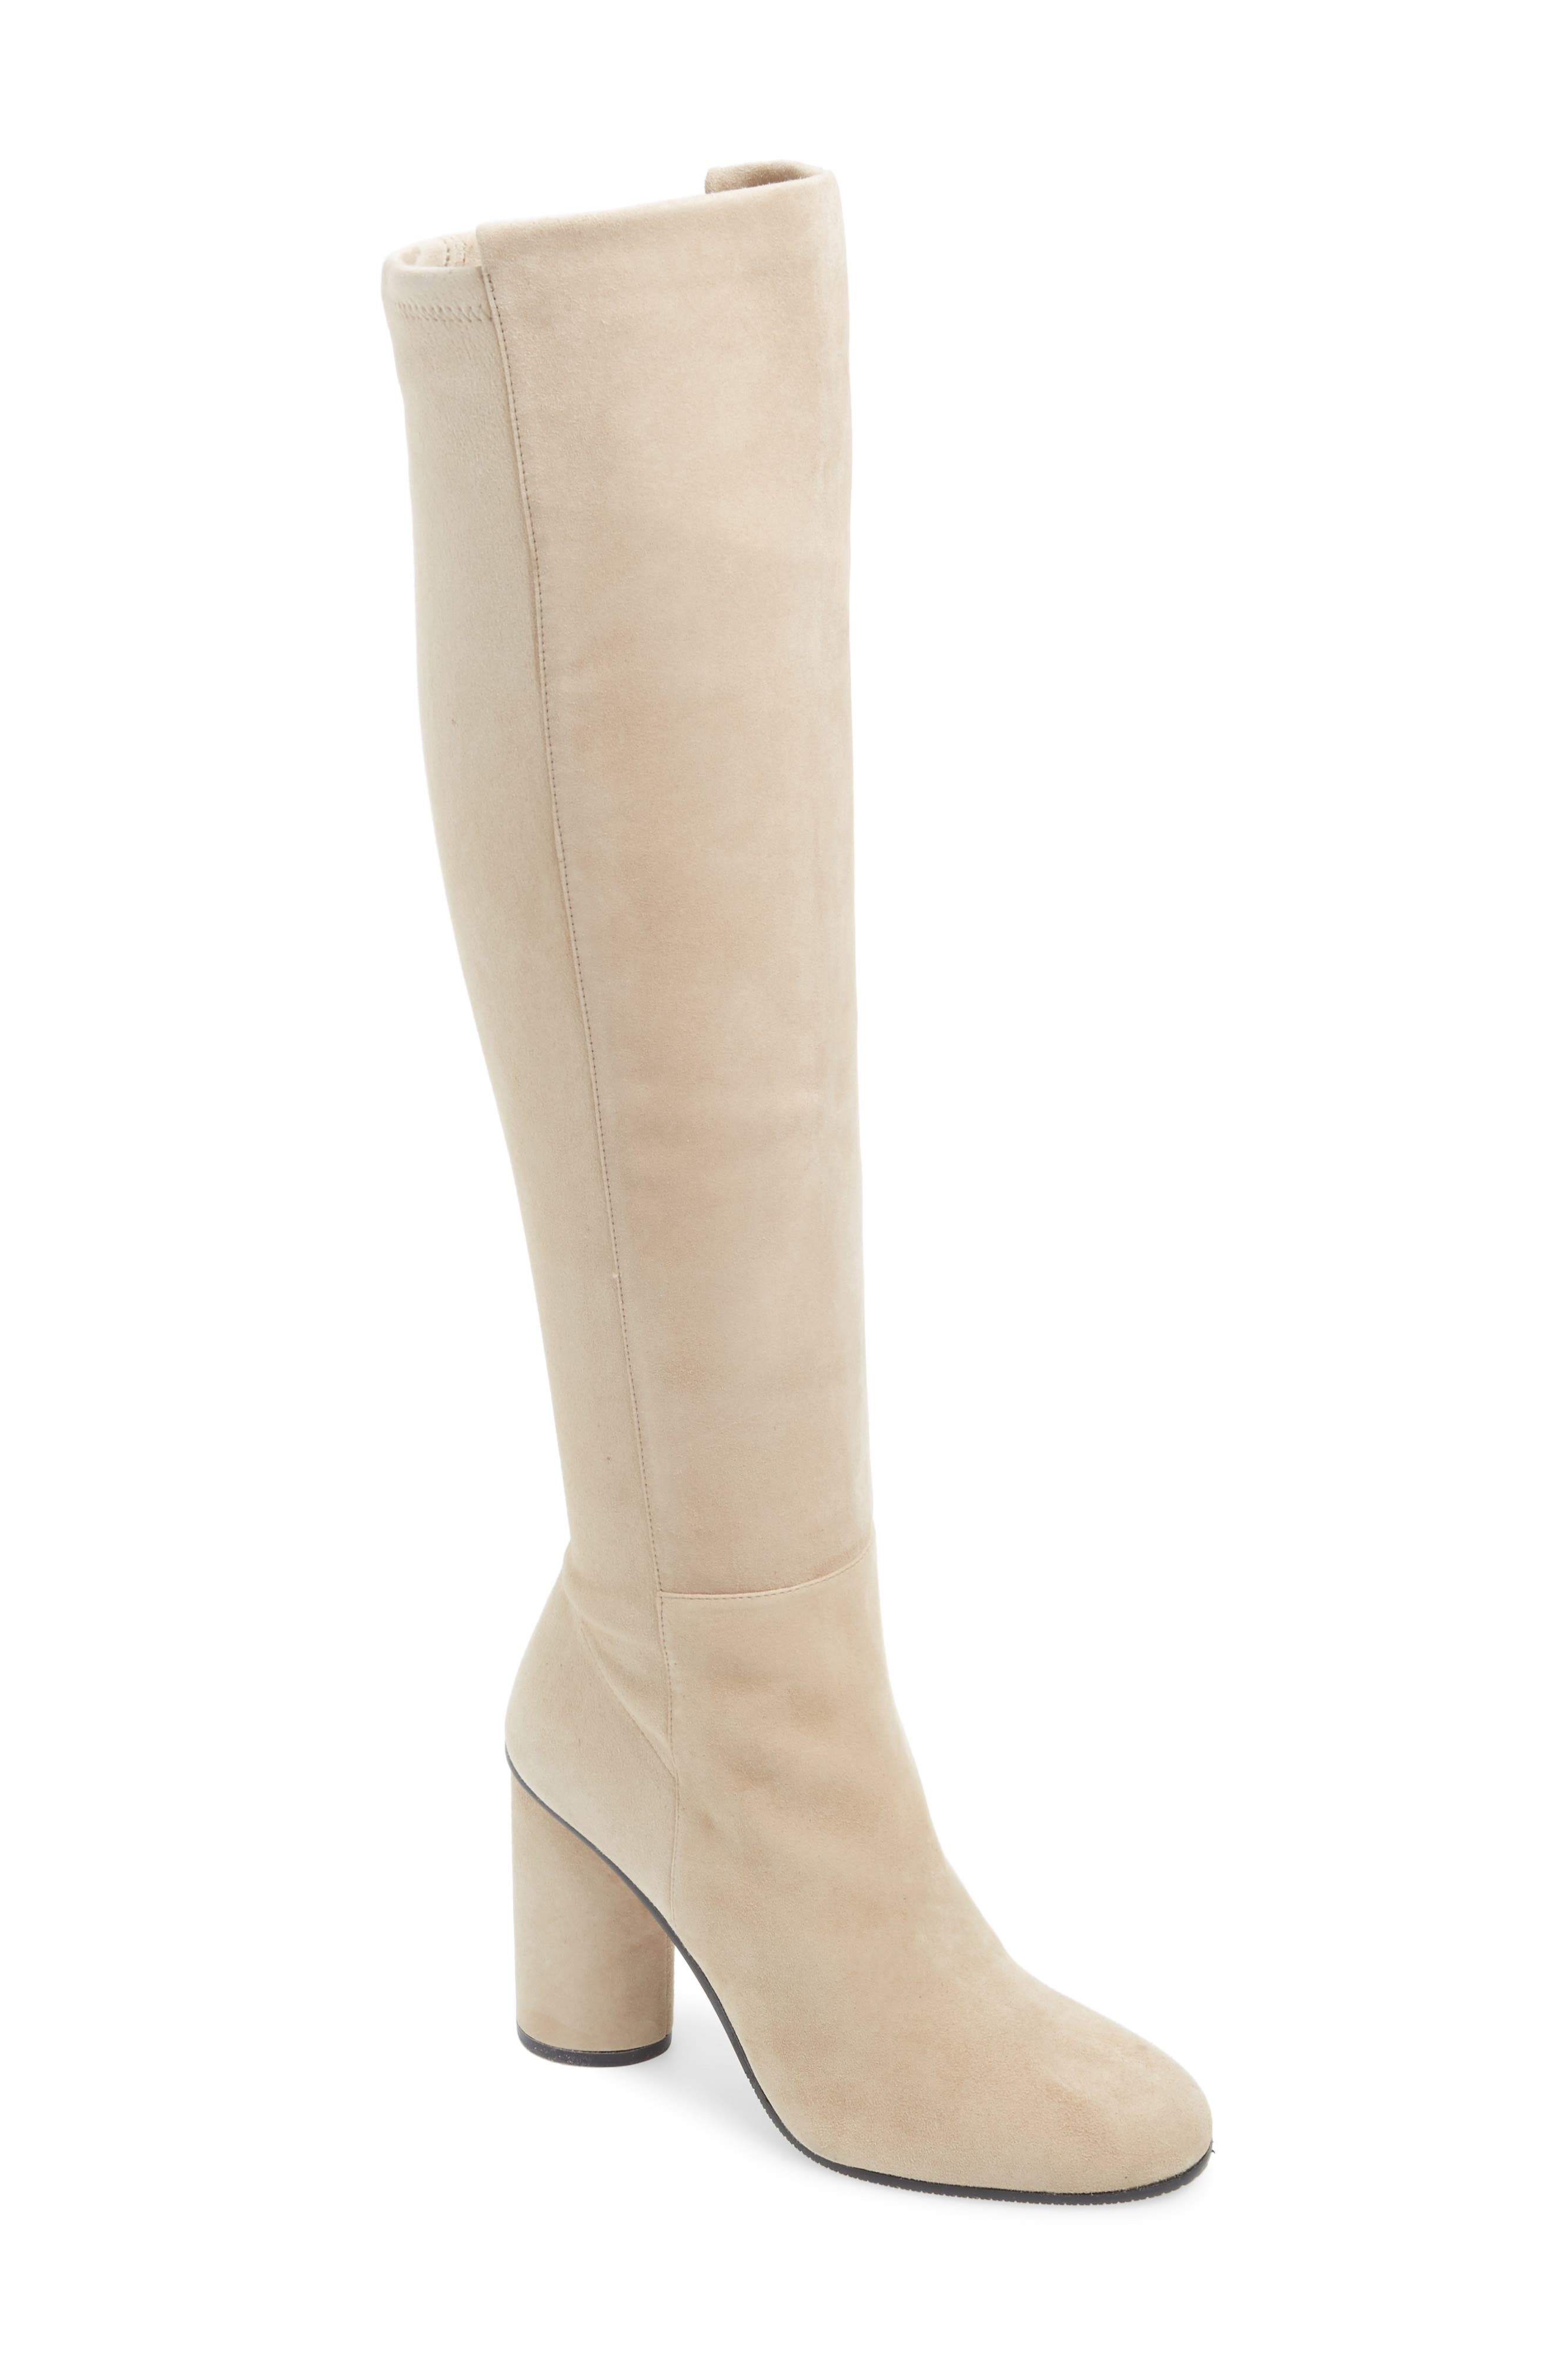 Eloise Over the Knee Boot,                             Main thumbnail 1, color,                             270